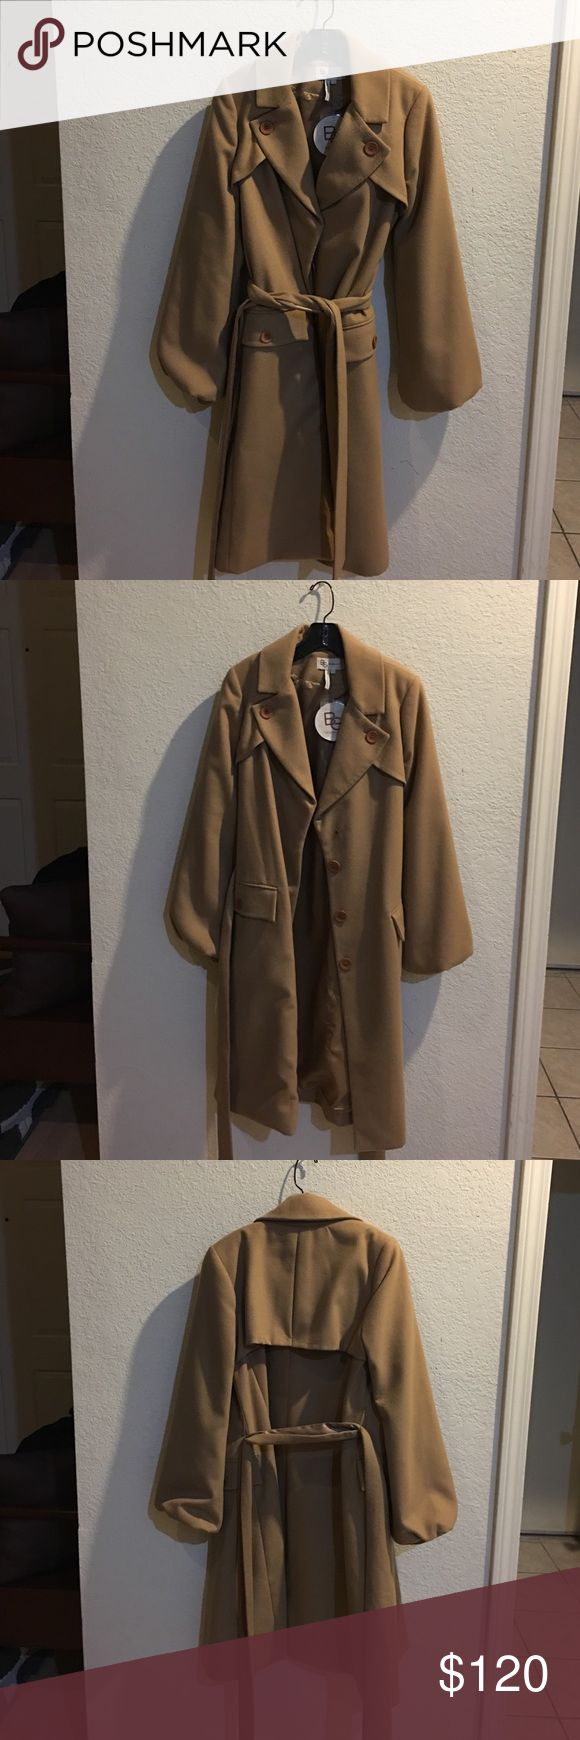 BCBGeneration Long Belted Trench Coat - NWT! - L BCBGeneration Belted Trench Coat NWT - Size L Color: Camel. Coat has bell sleeves. 70% poly 28% Rayon 2% Spandex. BCBGeneration Jackets & Coats Trench Coats